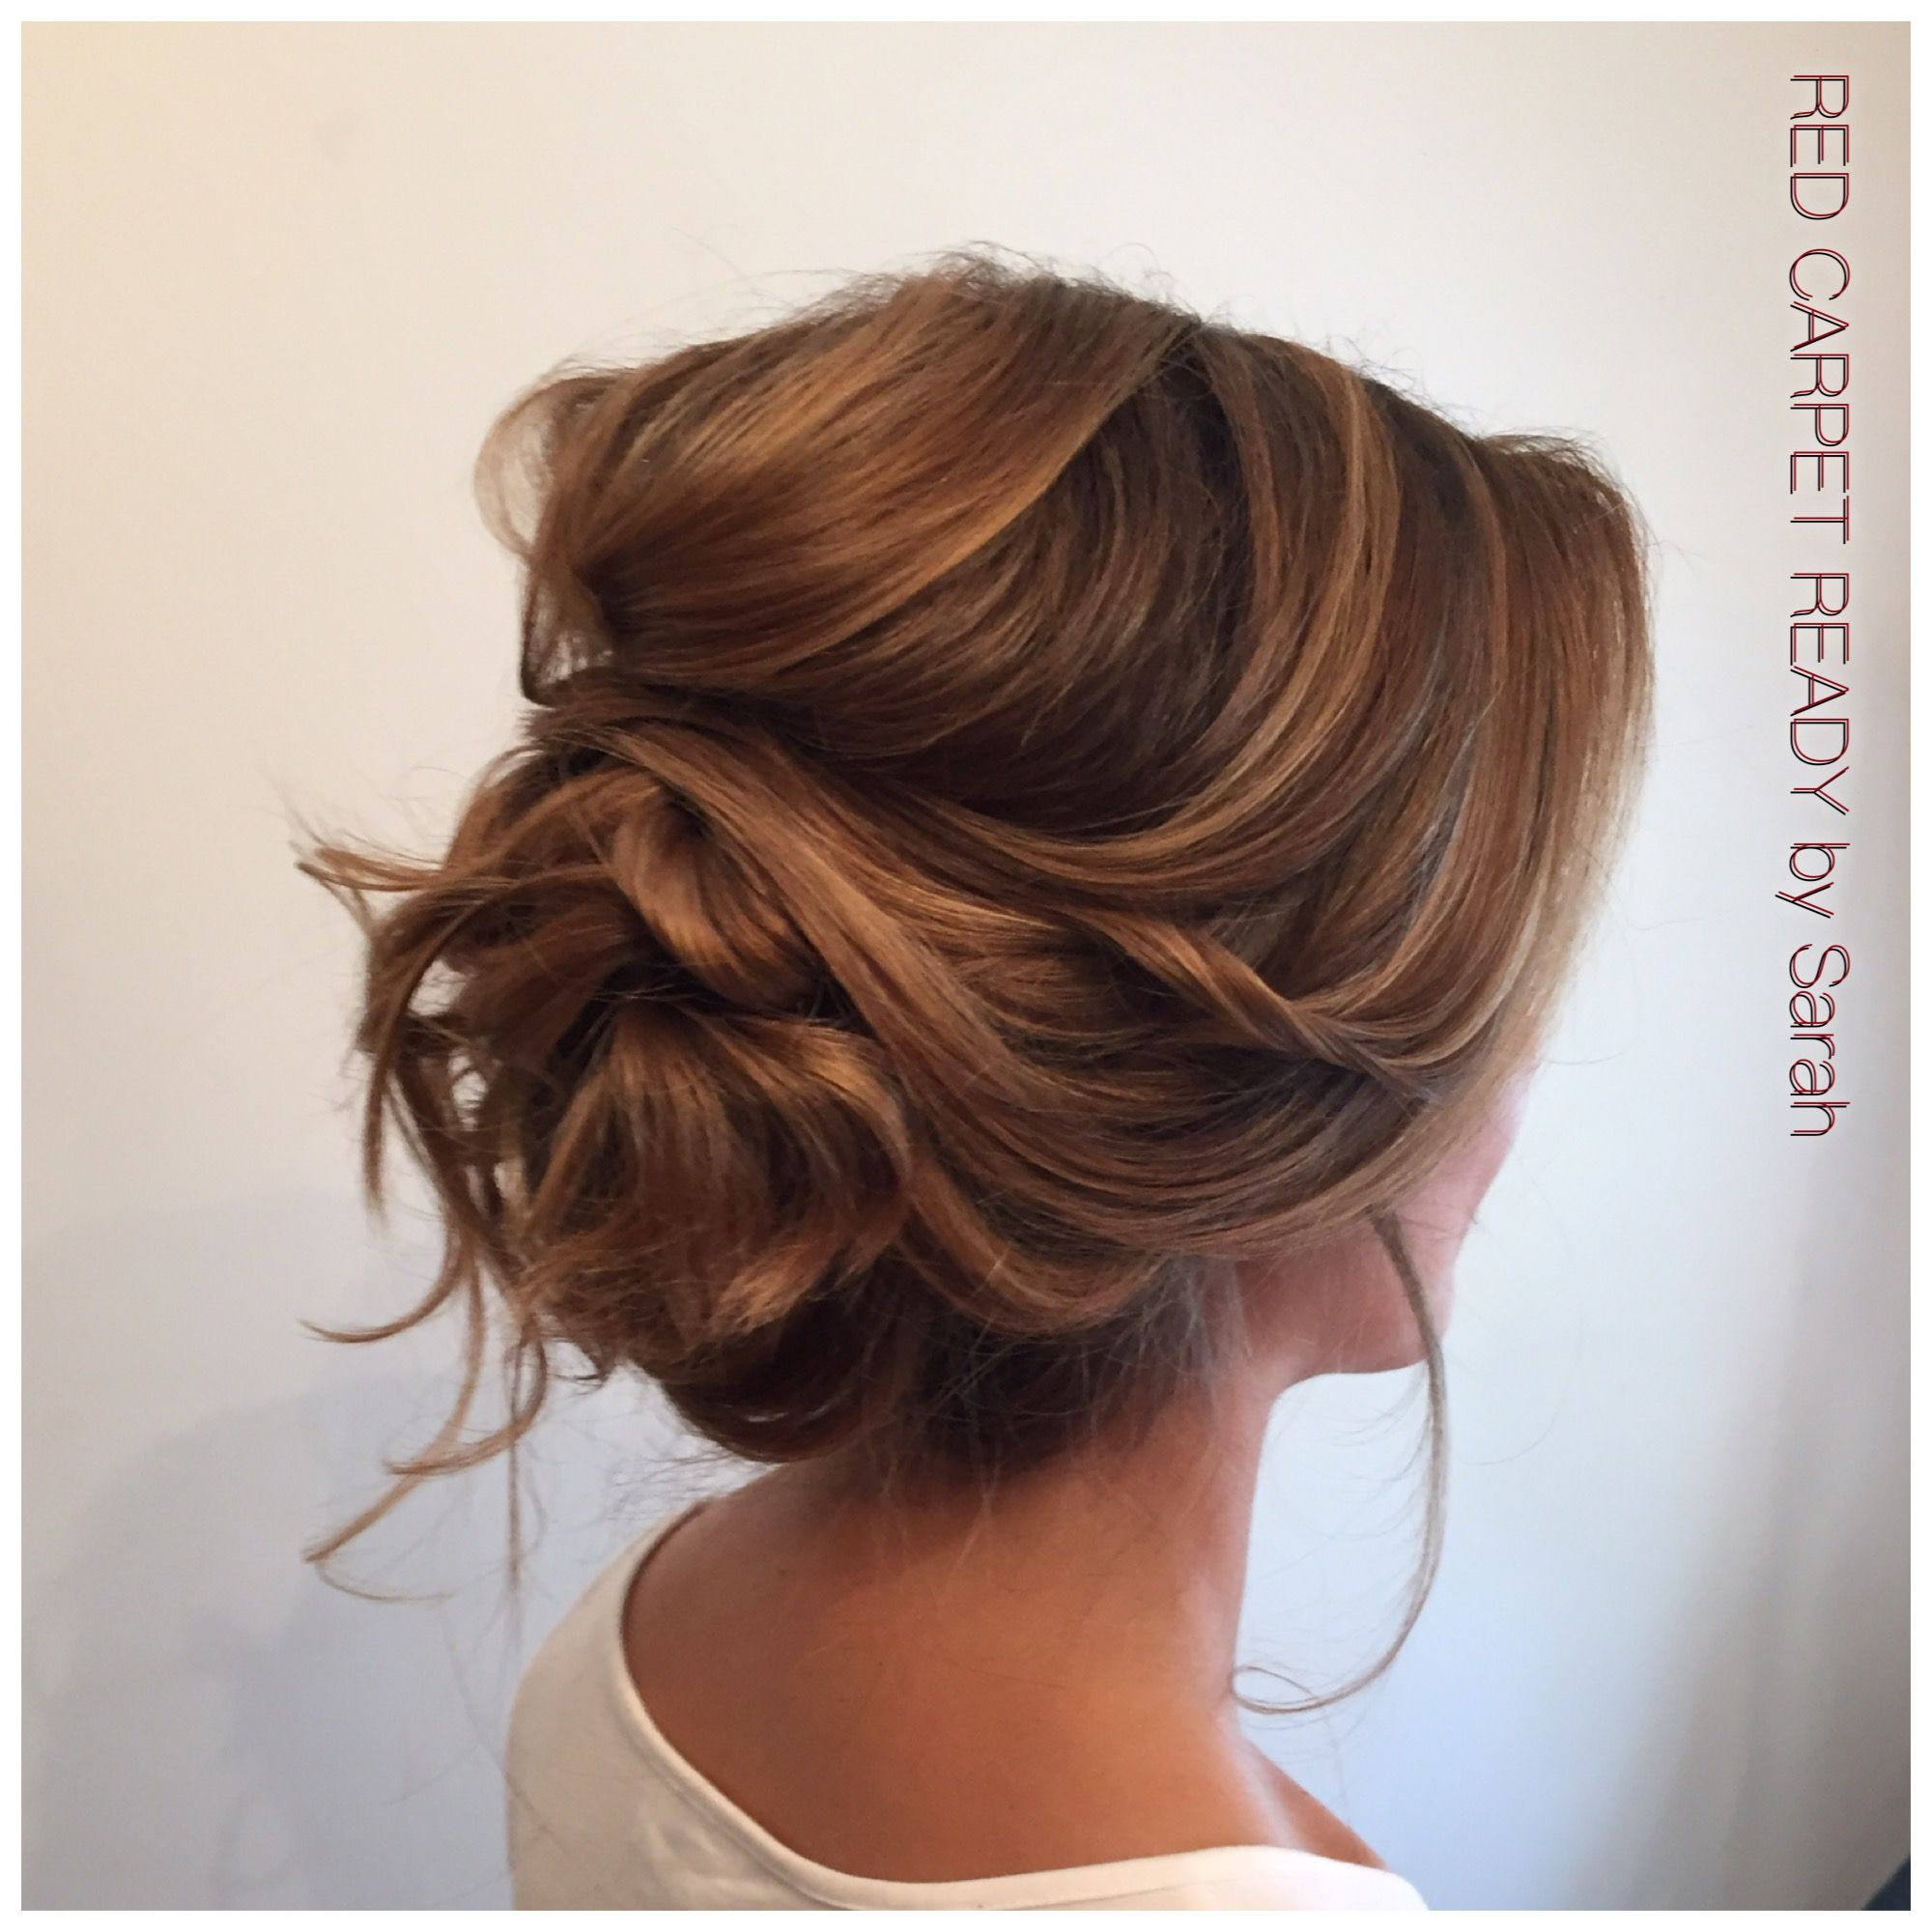 soft low voluminous updo hair by me | hairstyles | wedding